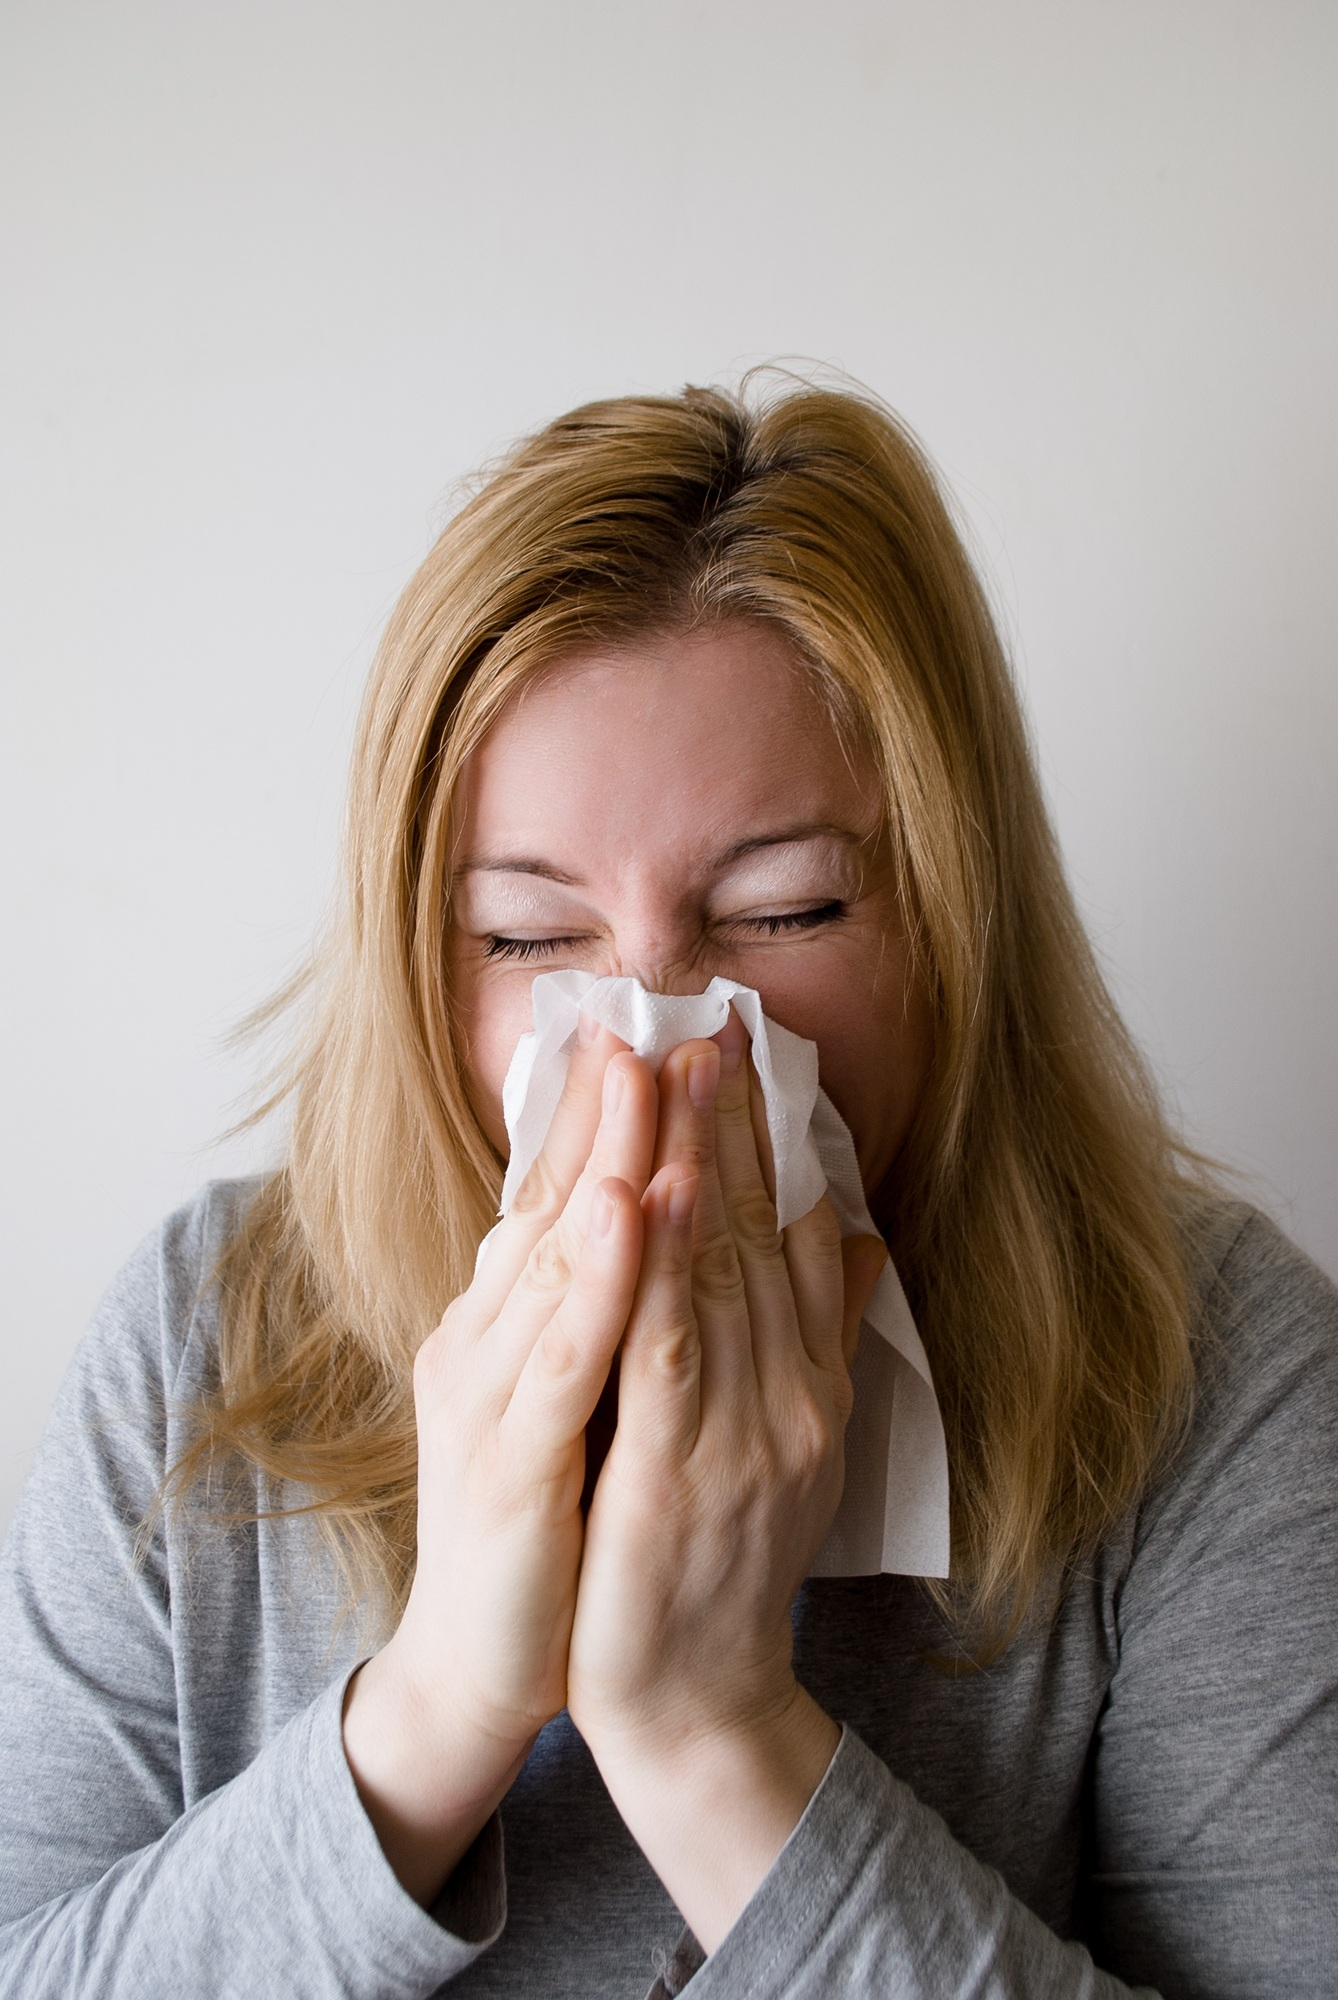 5 Simple Ways to Relieve Indoor Allergies57f88335dfb3a7348043b841286b3d7c